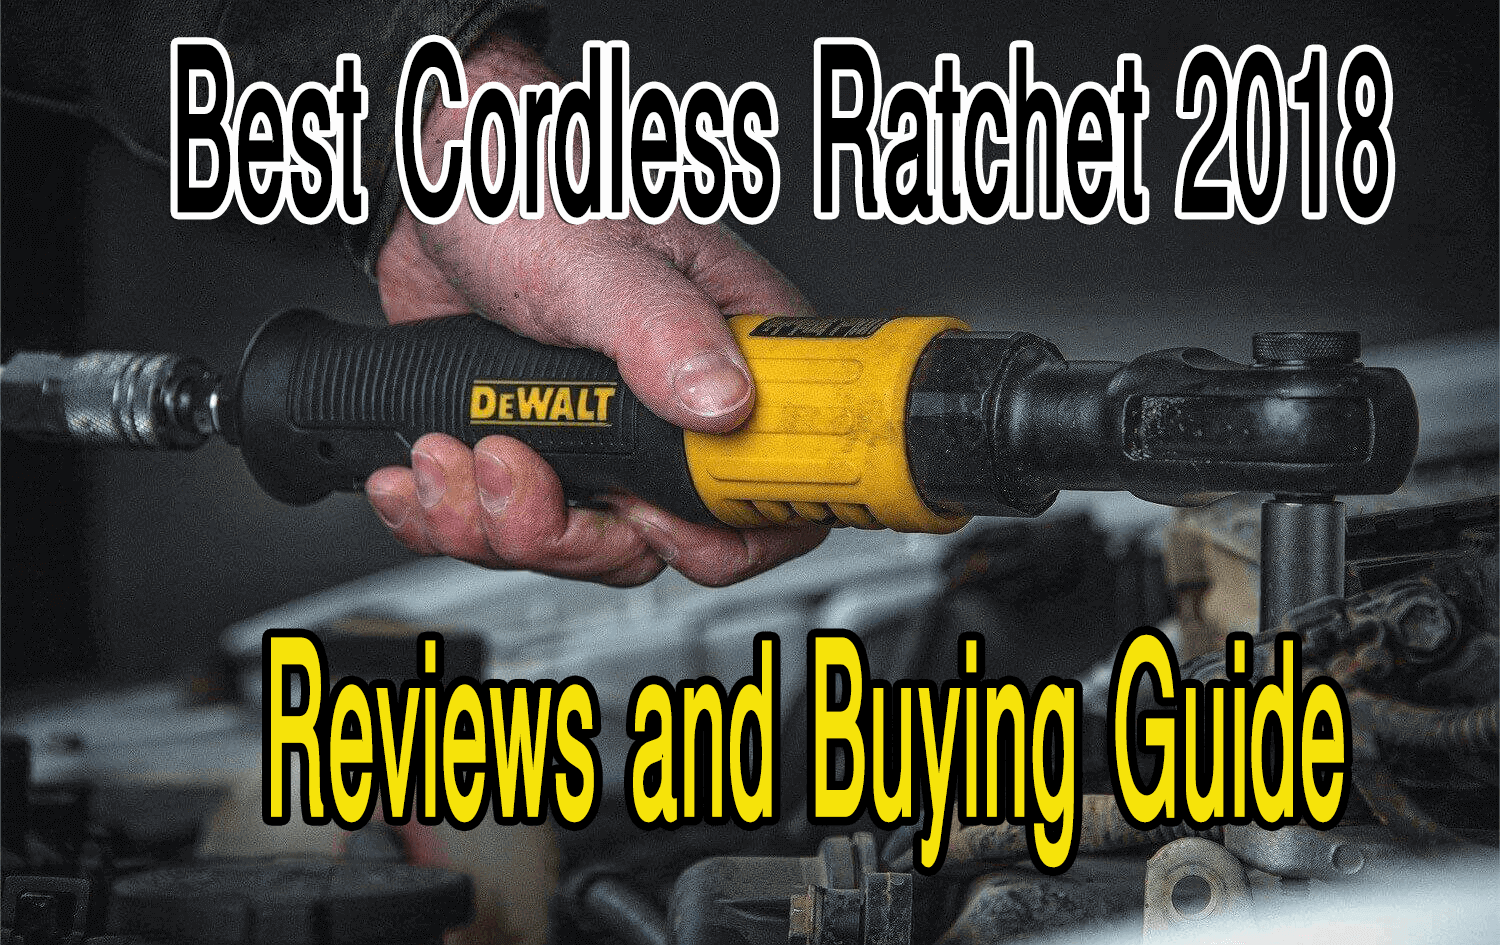 Best Cordless Ratchet 2018 – Reviews & Buying Guide